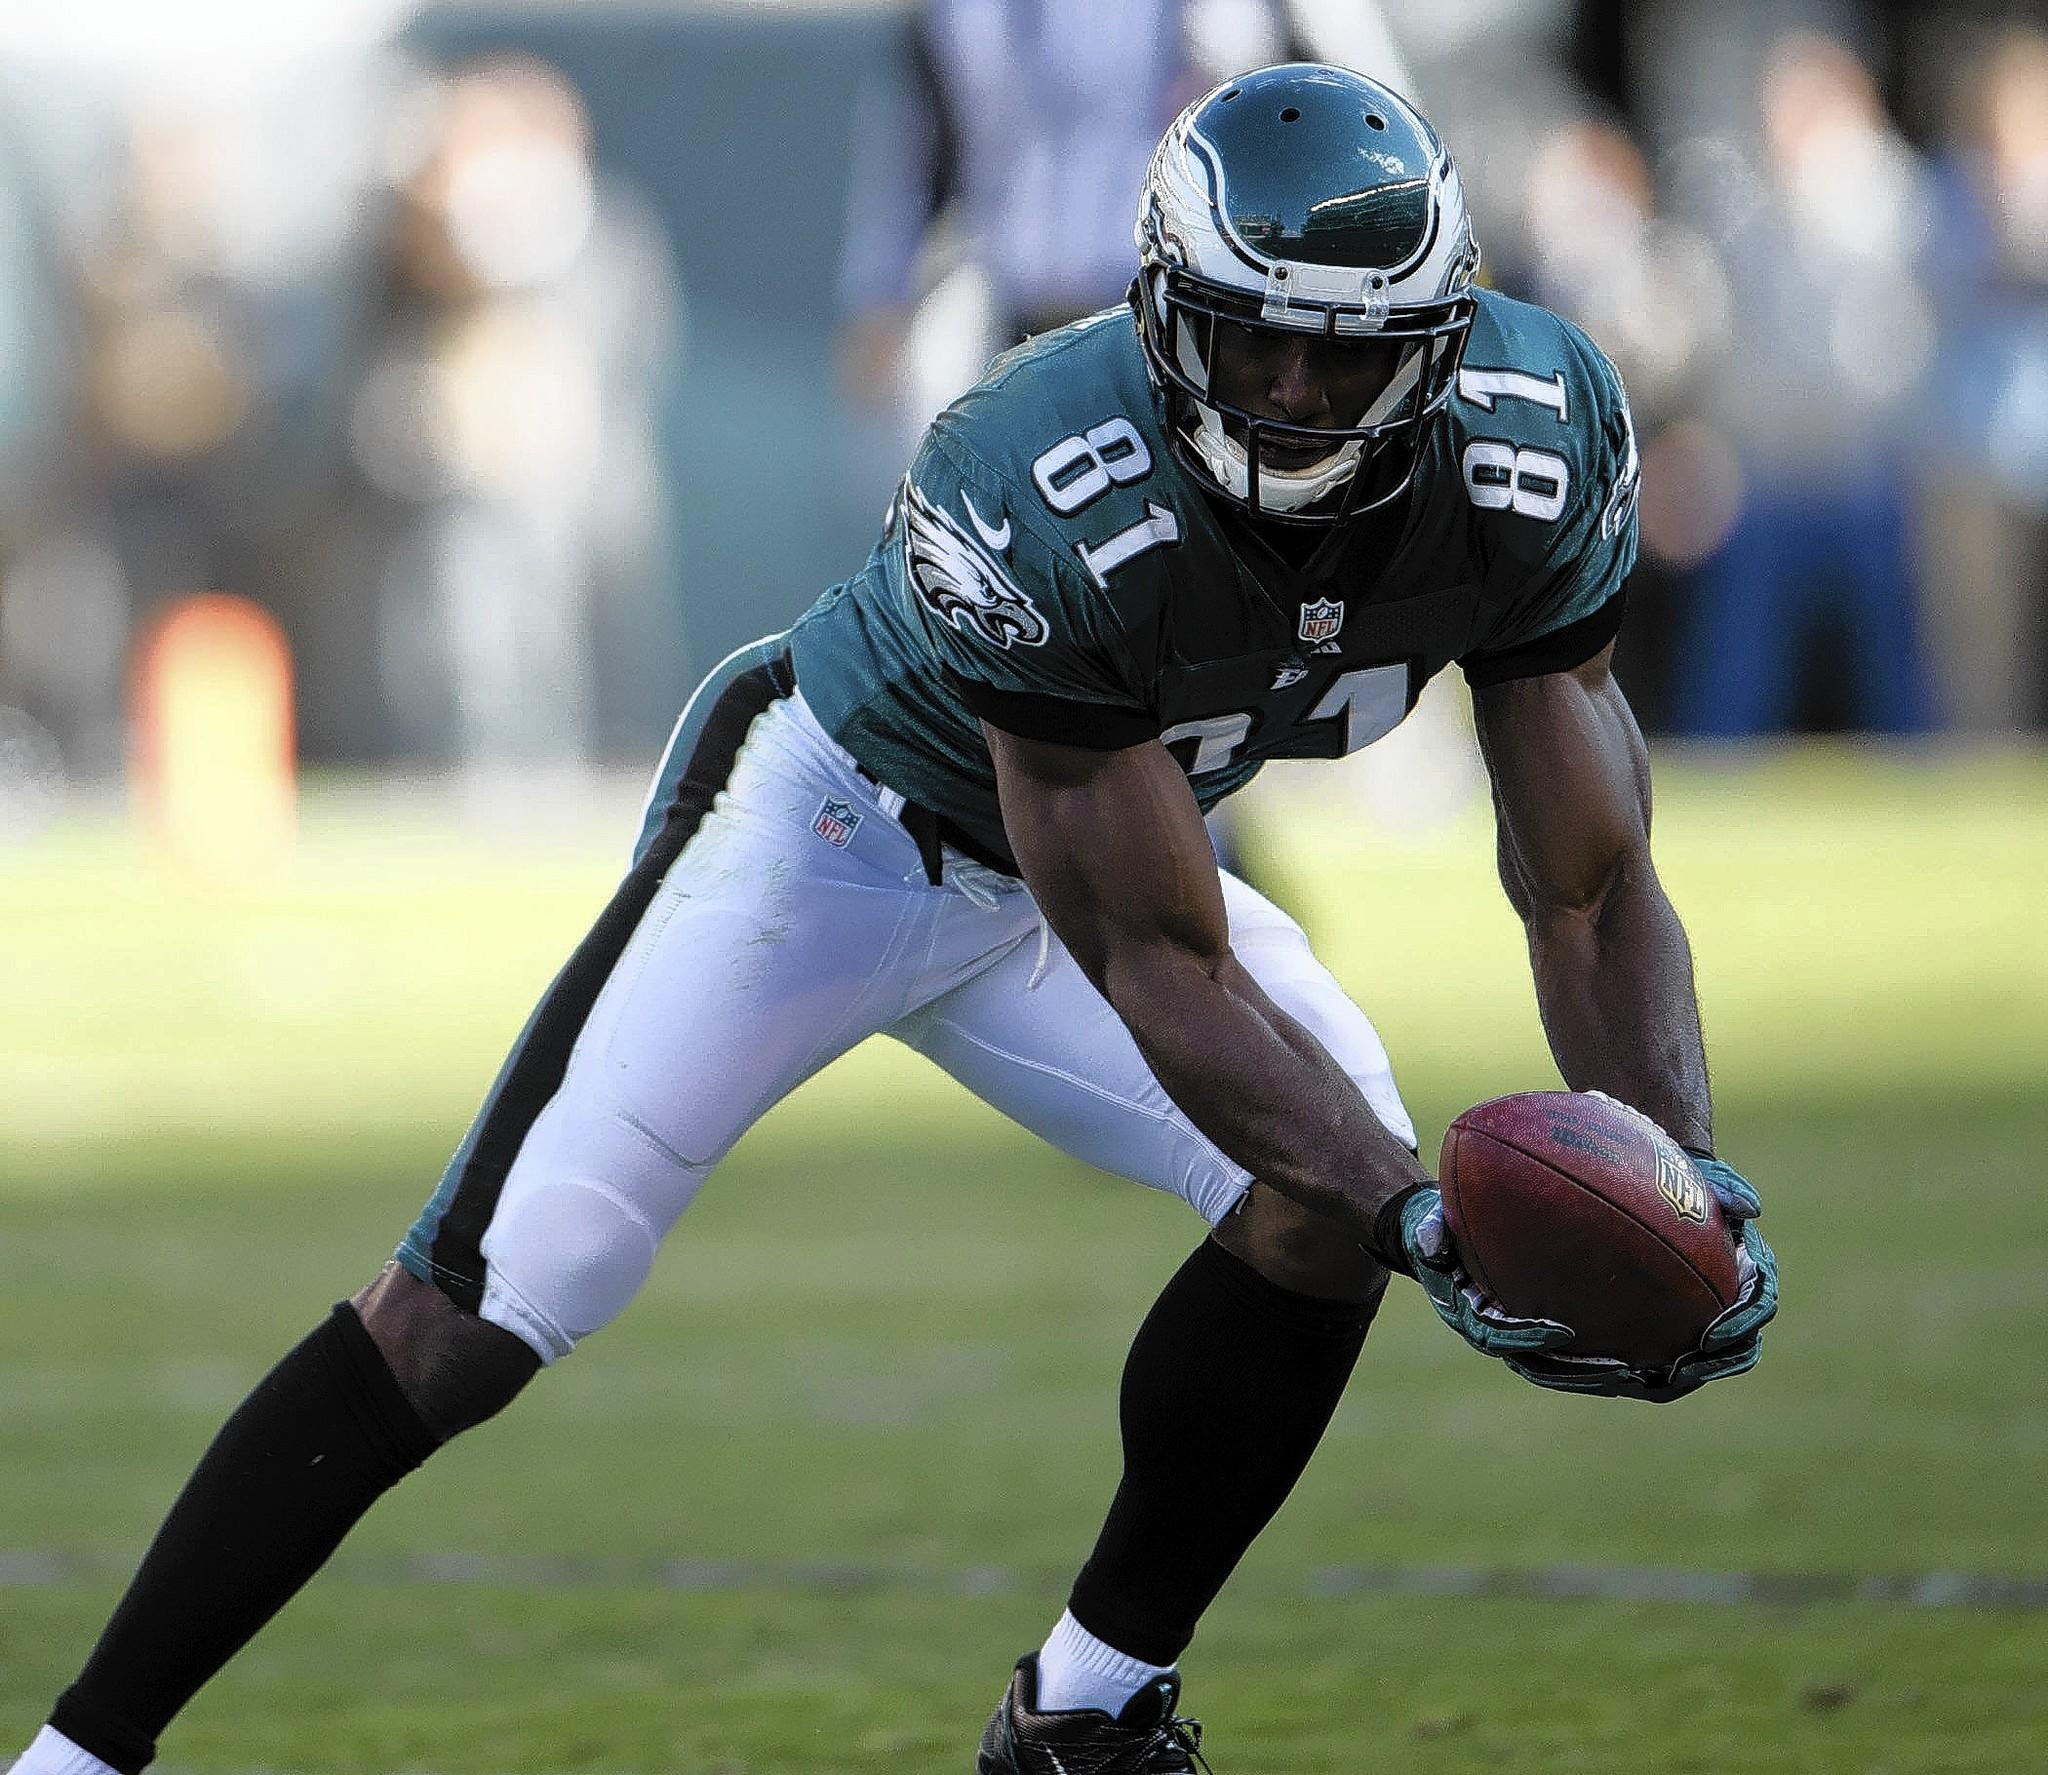 Philadelphia Eagles wide receiver Jason Avant (81) makes a catch against the New York Giants at Lincoln Financial Field in Philadelphia on Sunday, October, 27, 2013.